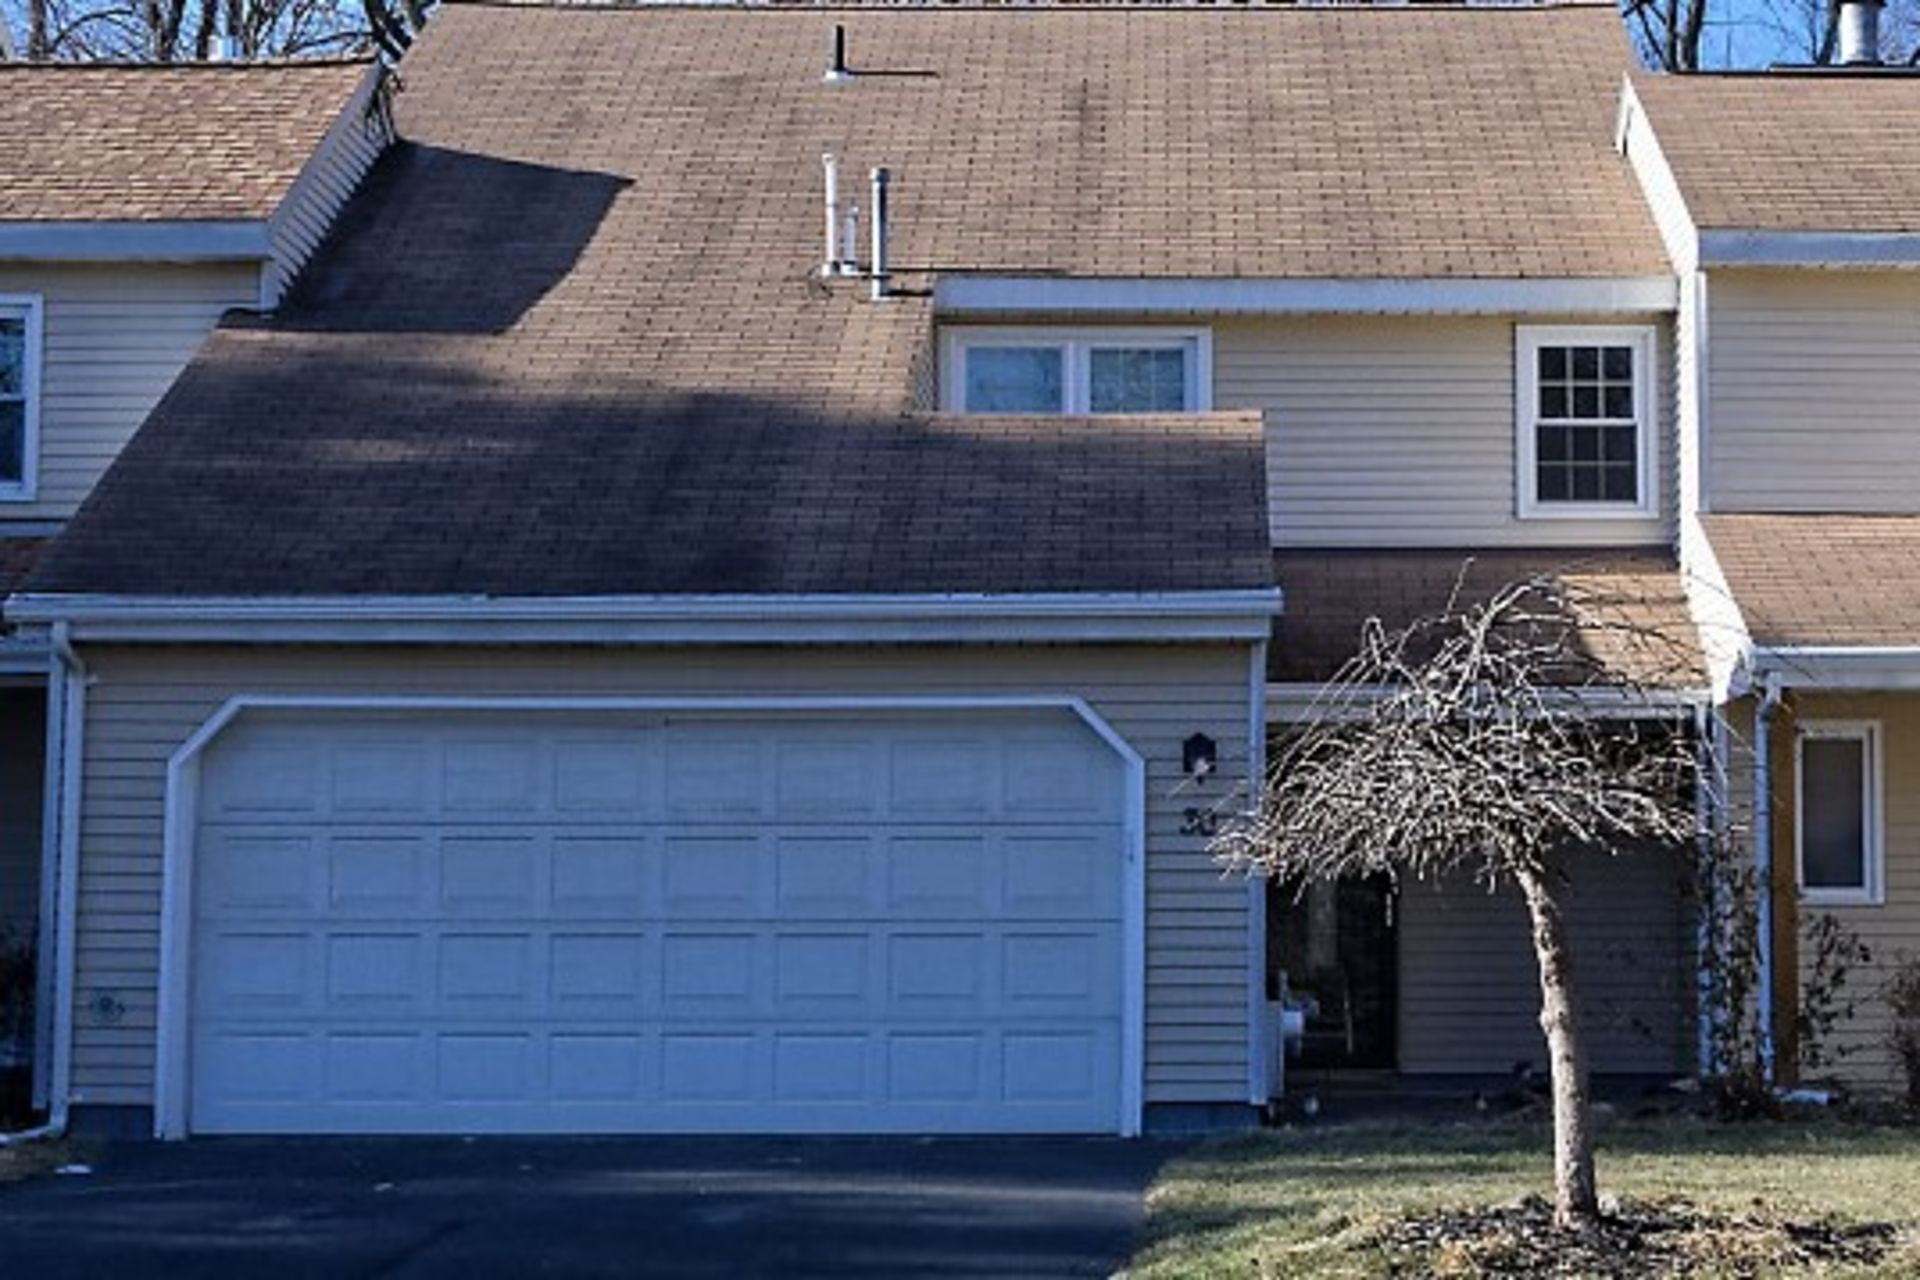 3 BR, 2.5BA TH with 2 Car Garage in Clifton Park